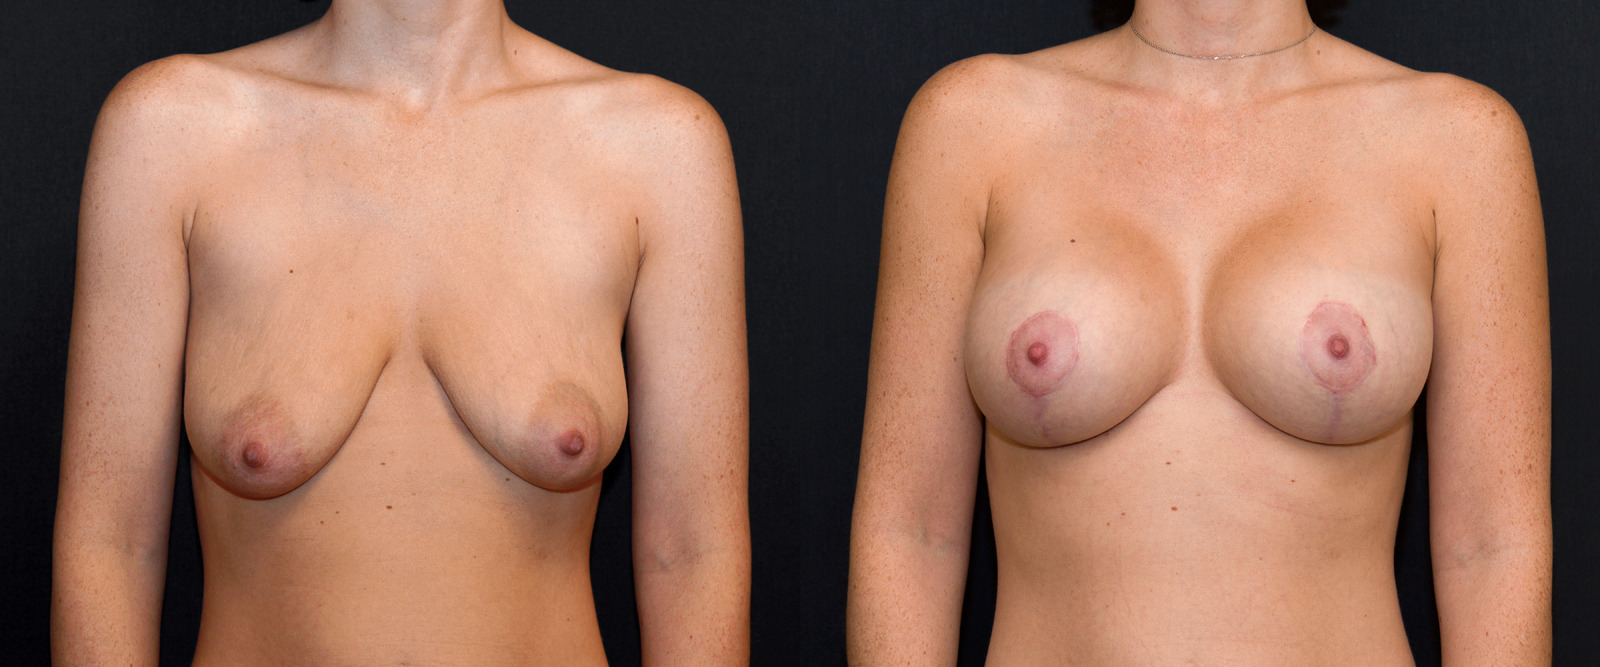 Breast Lift with Augmentation - Before & After